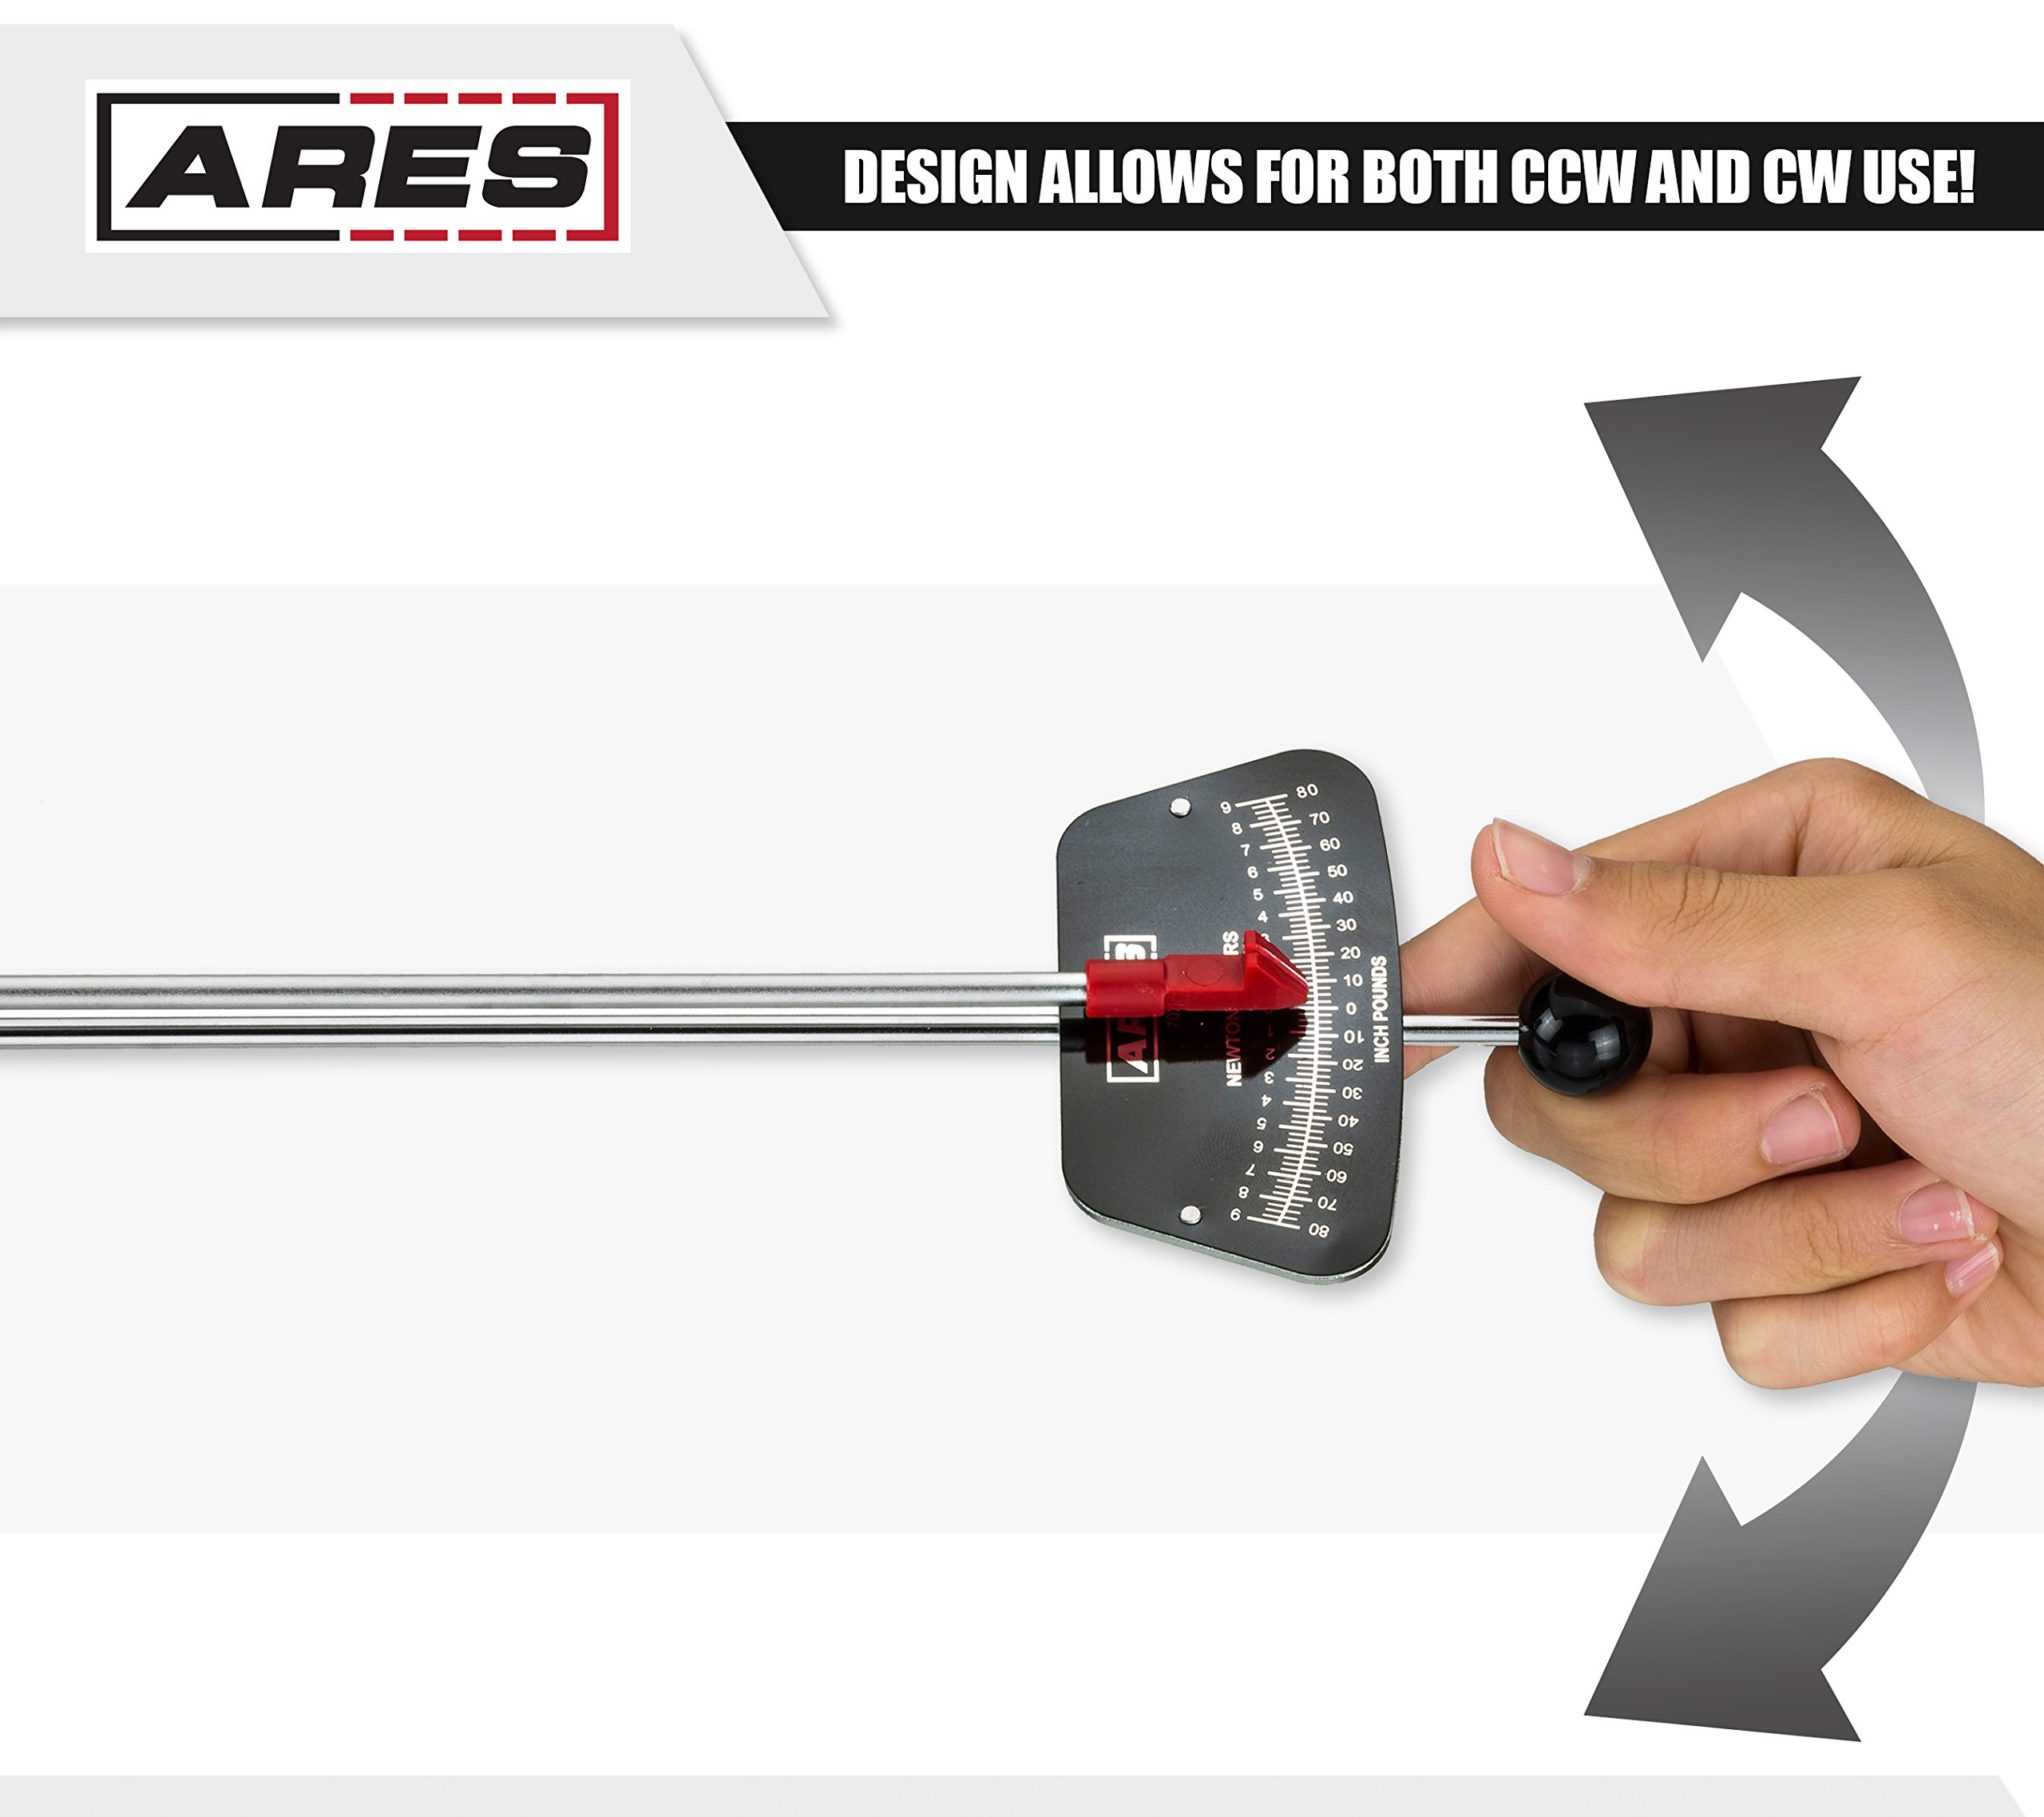 ARES 70213 | 1/4-inch Drive Beam Torque Wrench | 0-80 in/lb and 0-9 Newton Meter Torque Wrench | High Visibility Markings for Easy Readings by ARES (Image #5)